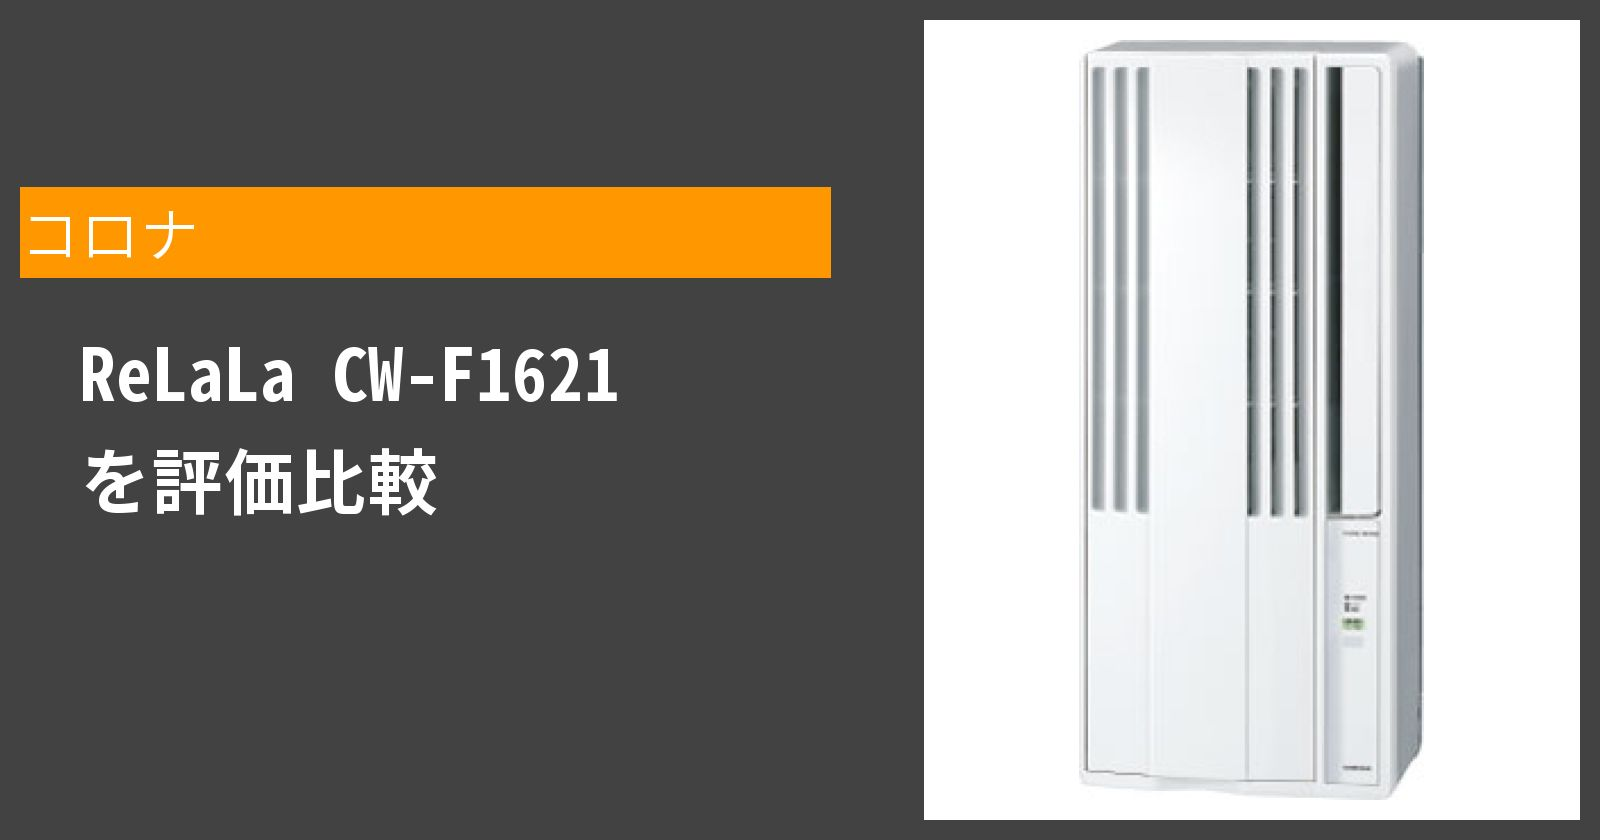 ReLaLa CW-F1621を徹底評価